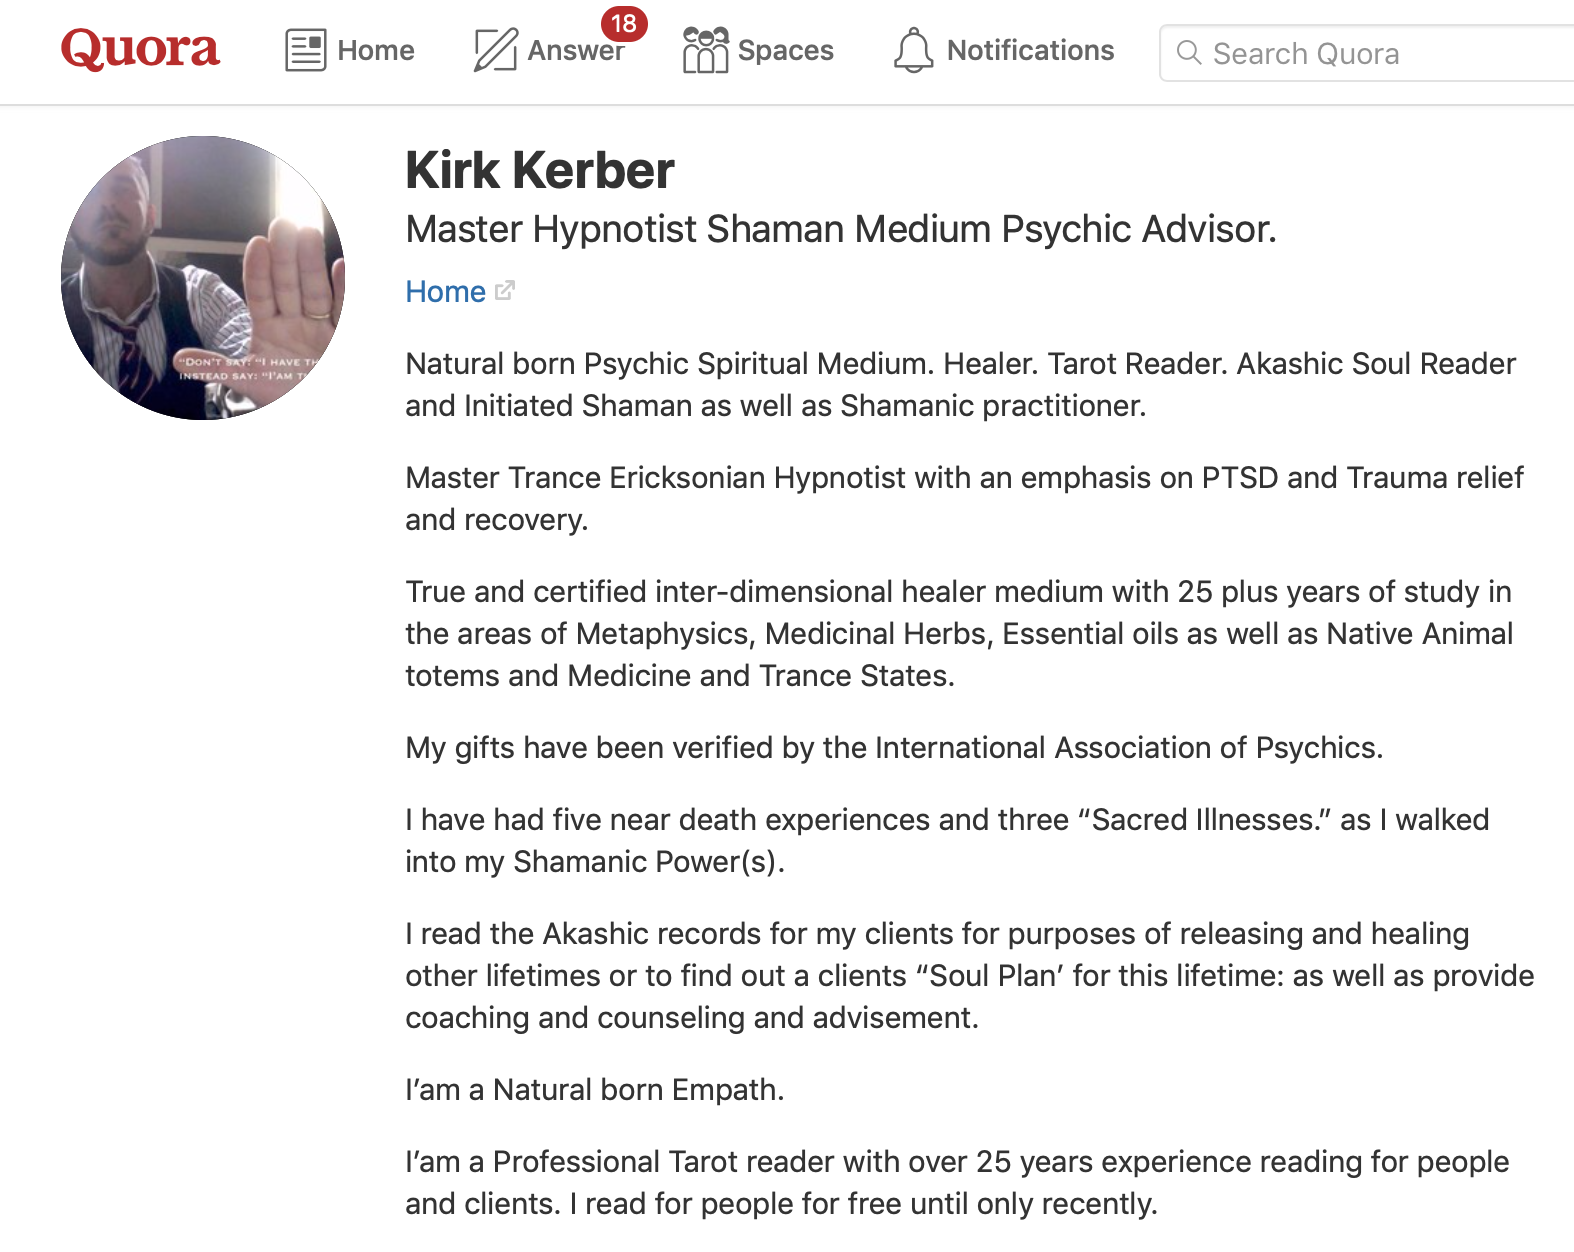 I have a profile over @ Quora where I answered over 100 questions on being Psychic and my spiritual gifts and abilities…  Please feel free to check it out as a perspective client…